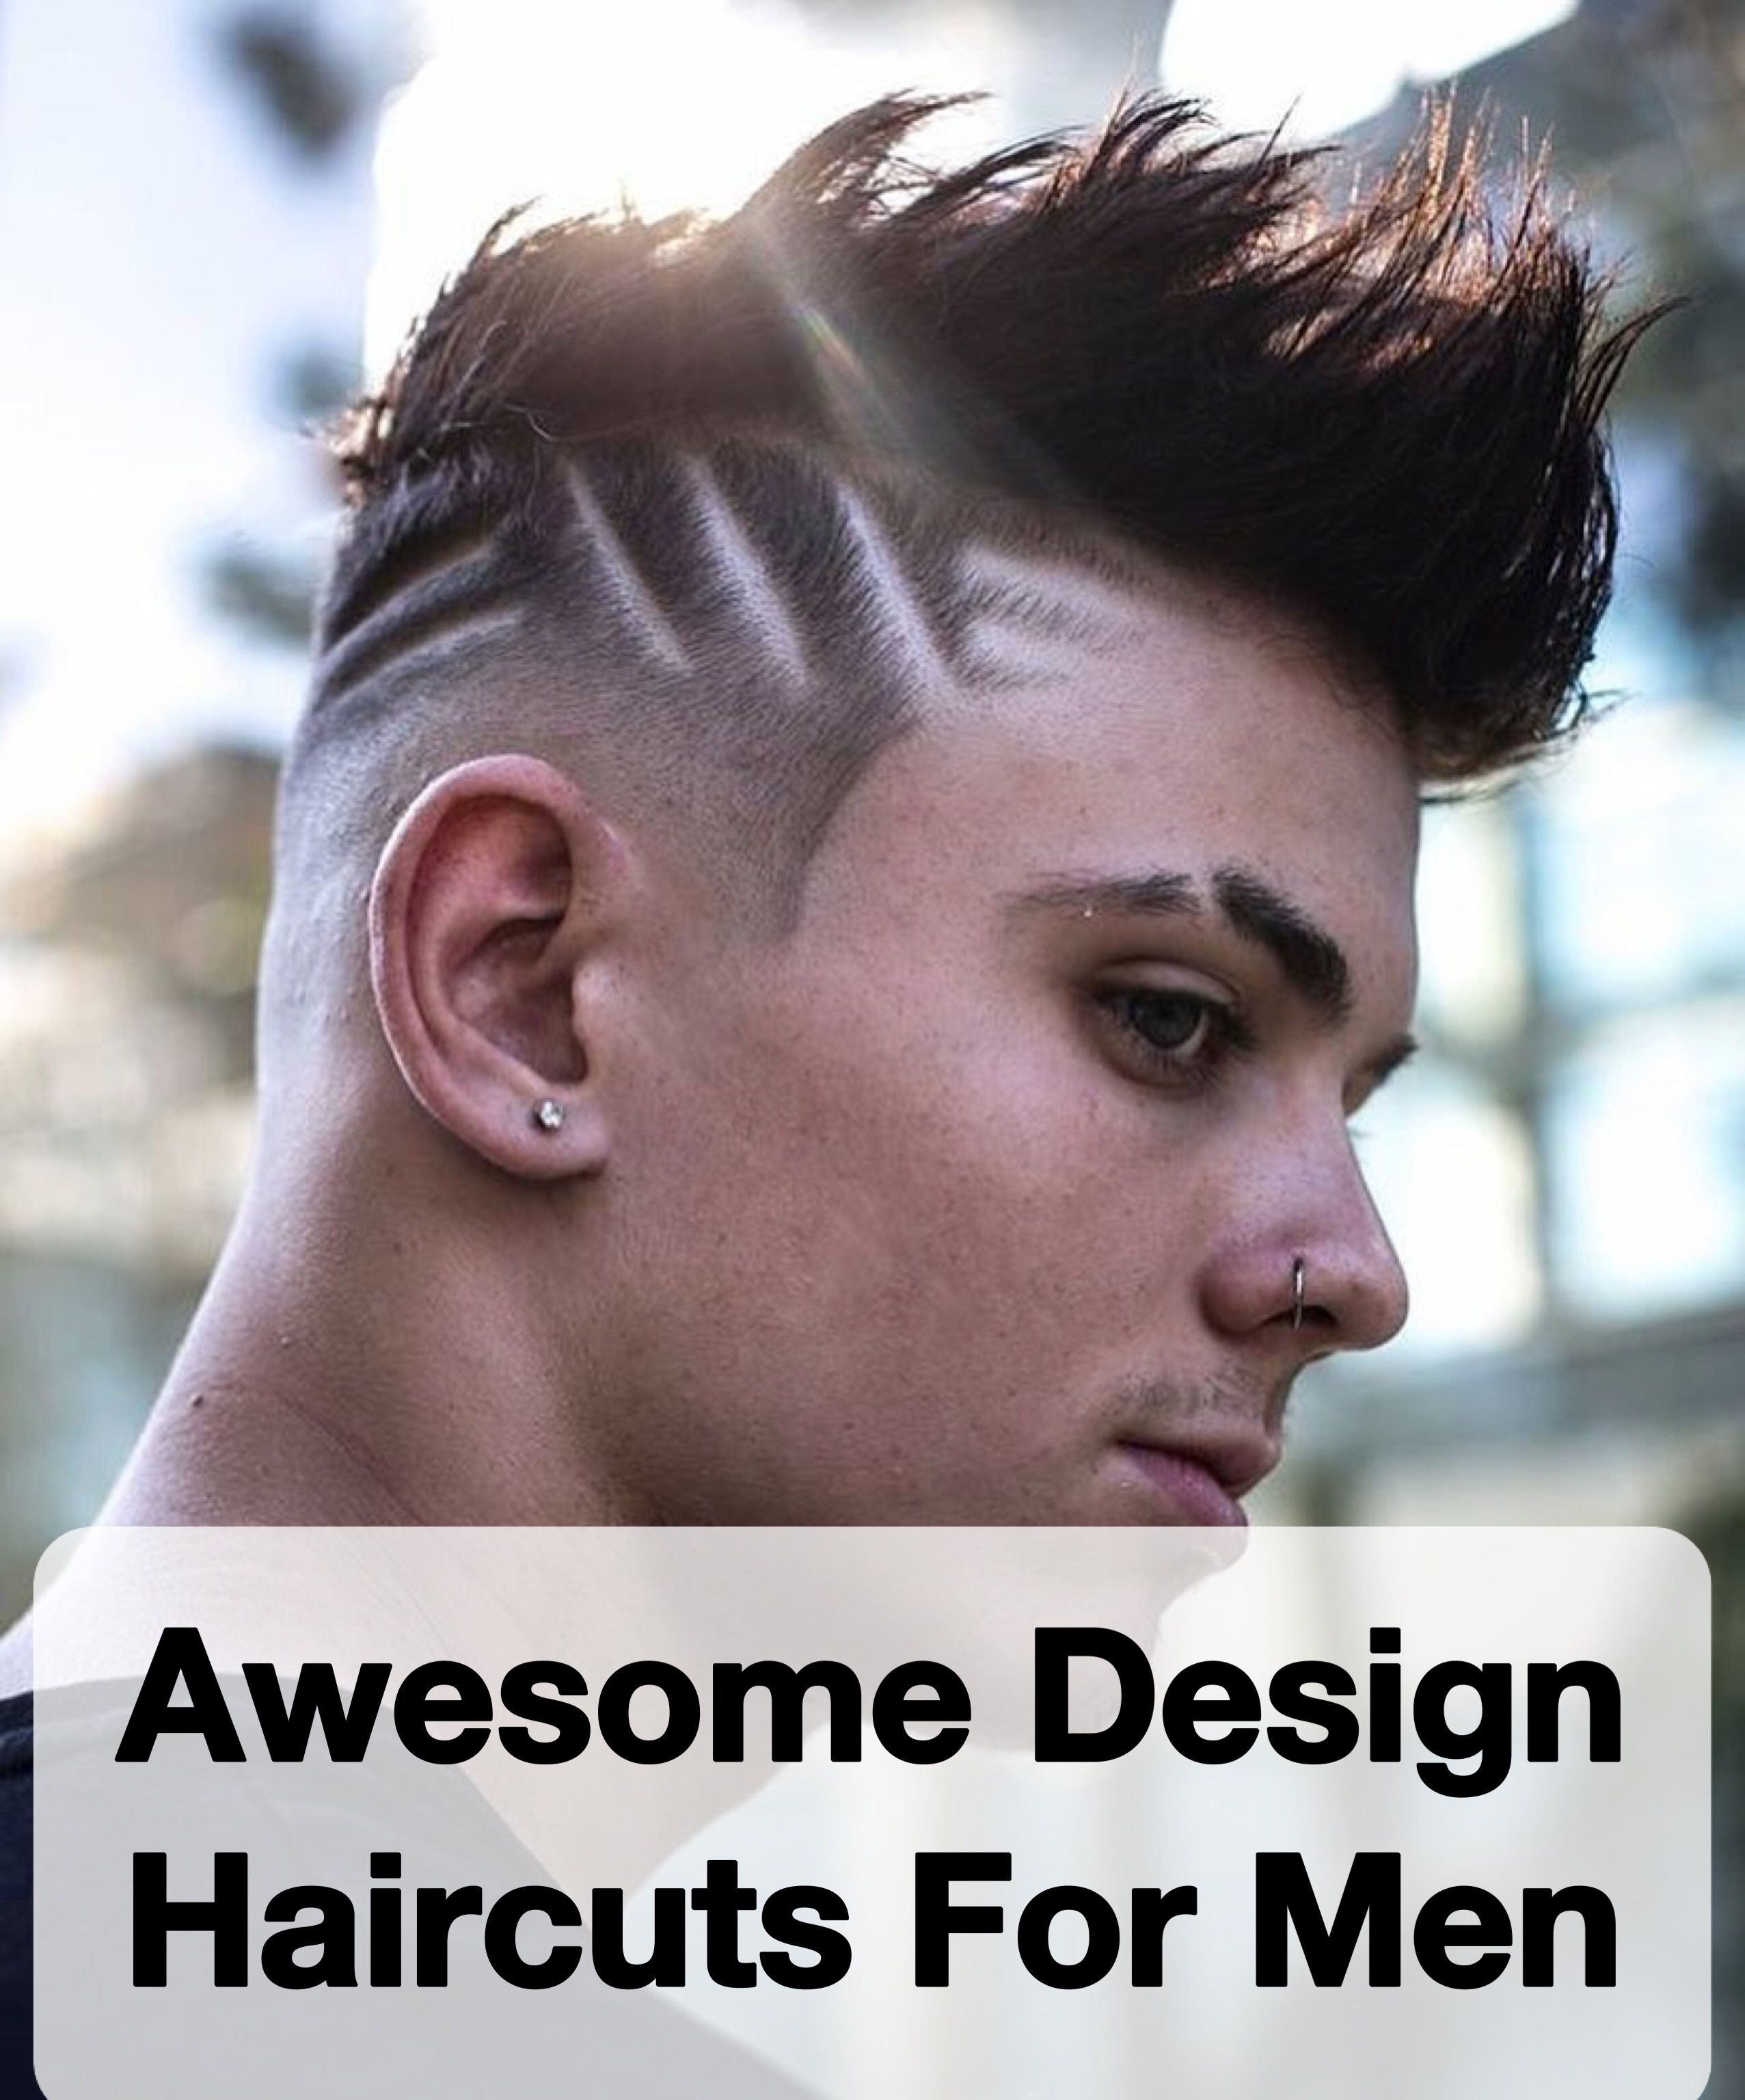 Haircut for men hairline  awesome design haircuts for men  haircuts  pinterest  hair